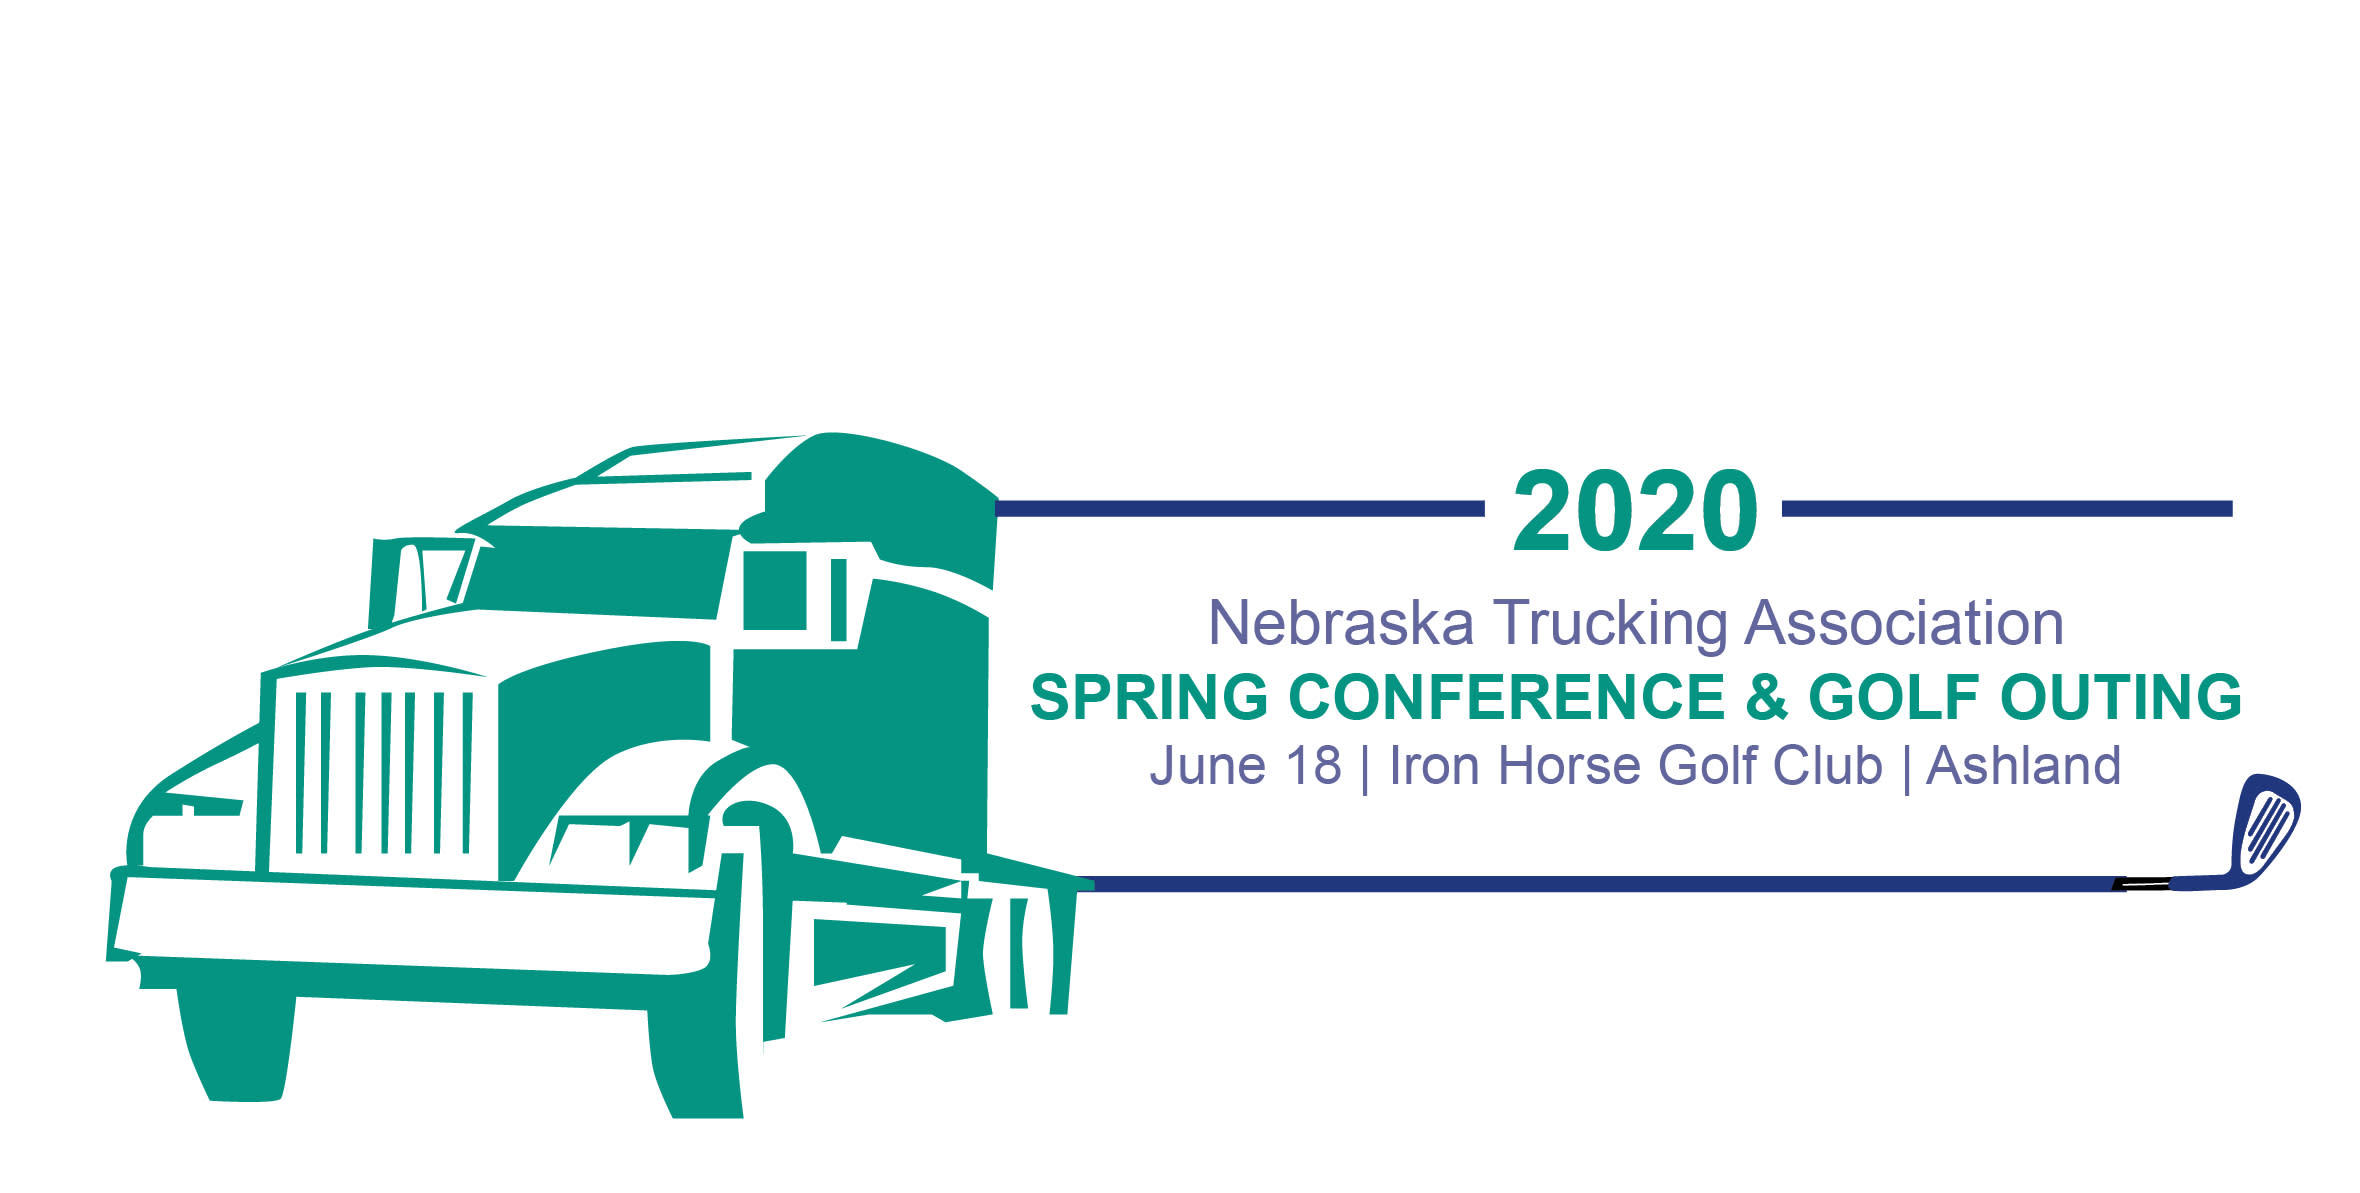 Spring Conference & Golf 2020, NTA